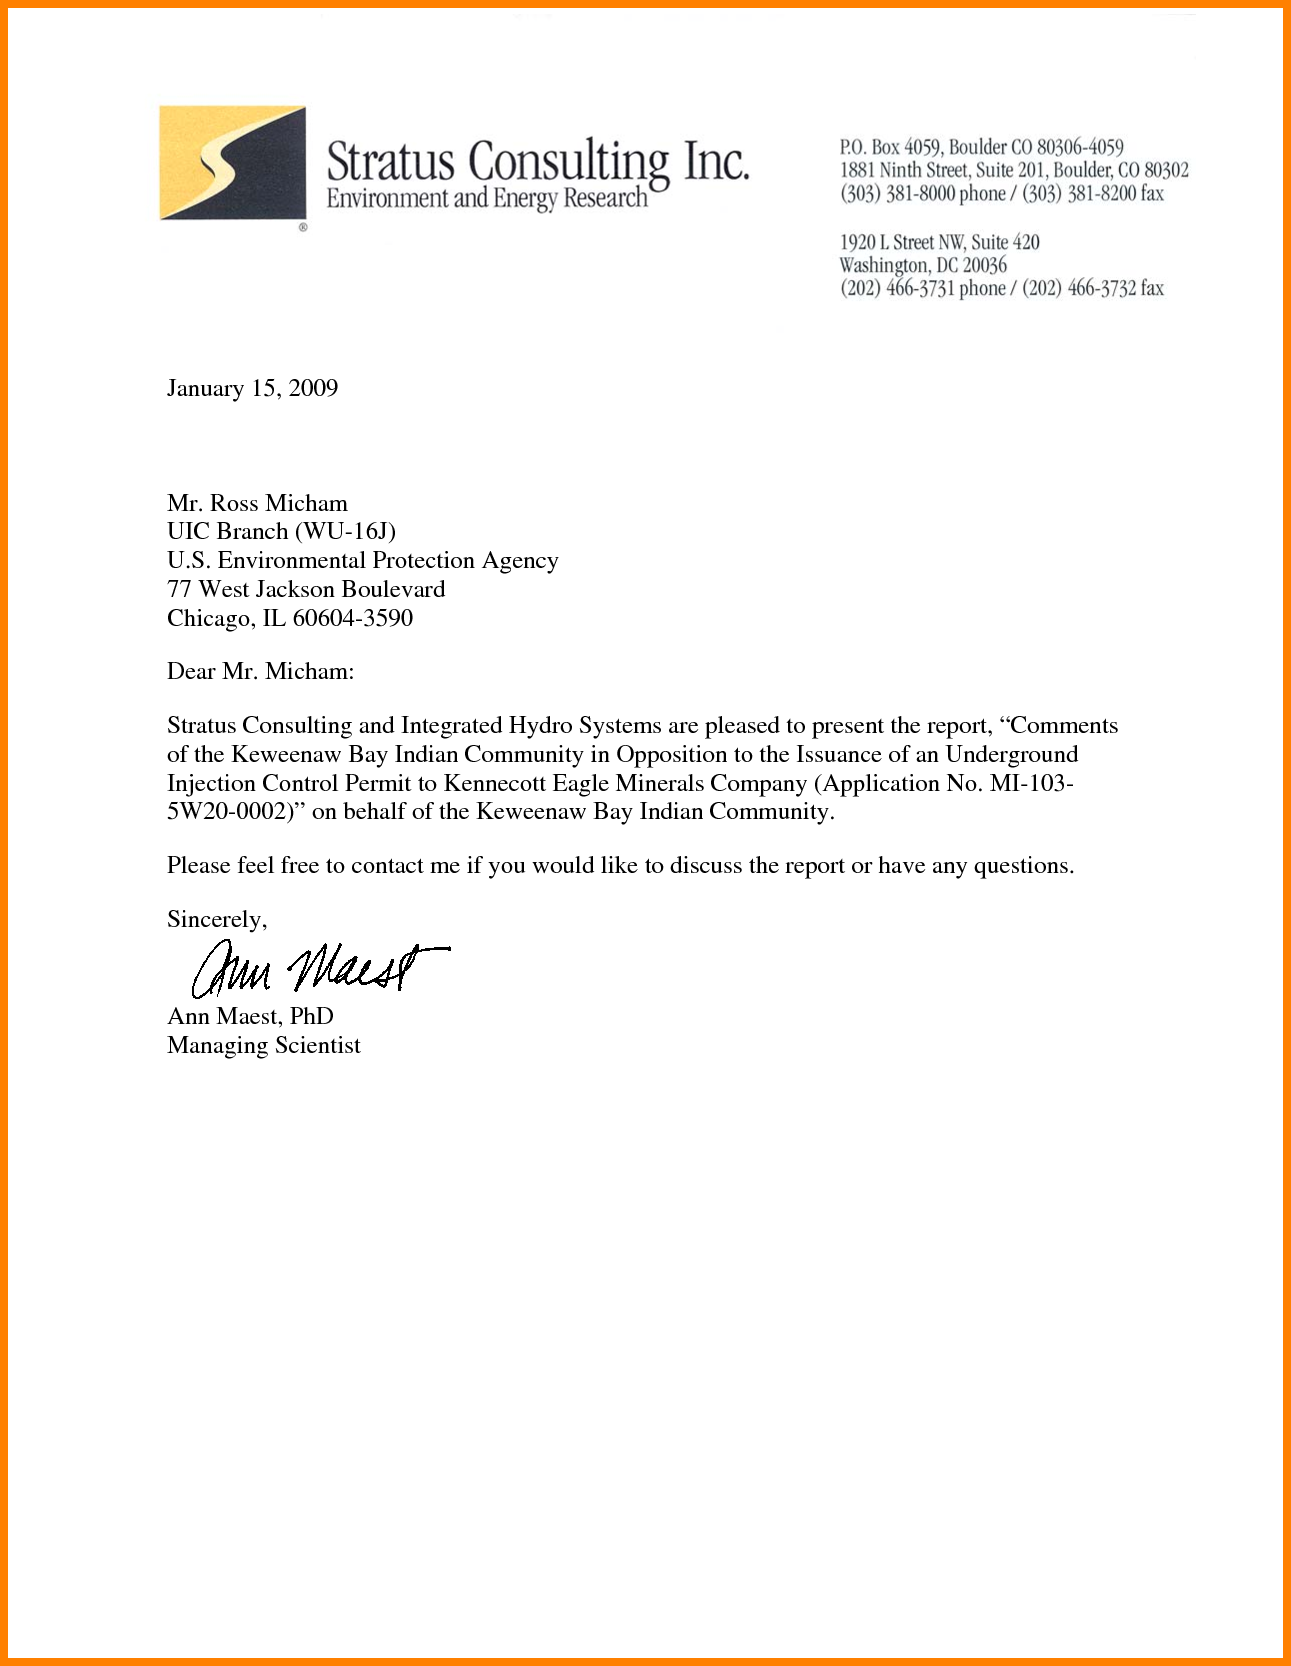 Business Letterhead Format With Images